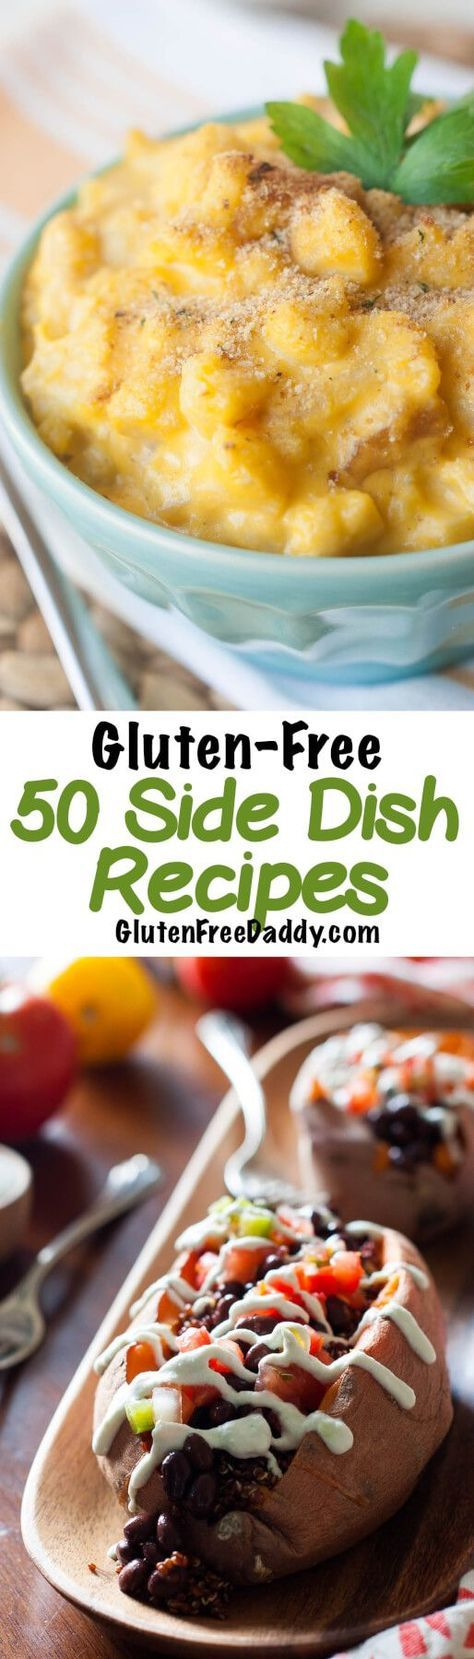 50 Gluten-Free Side Dish Recipes